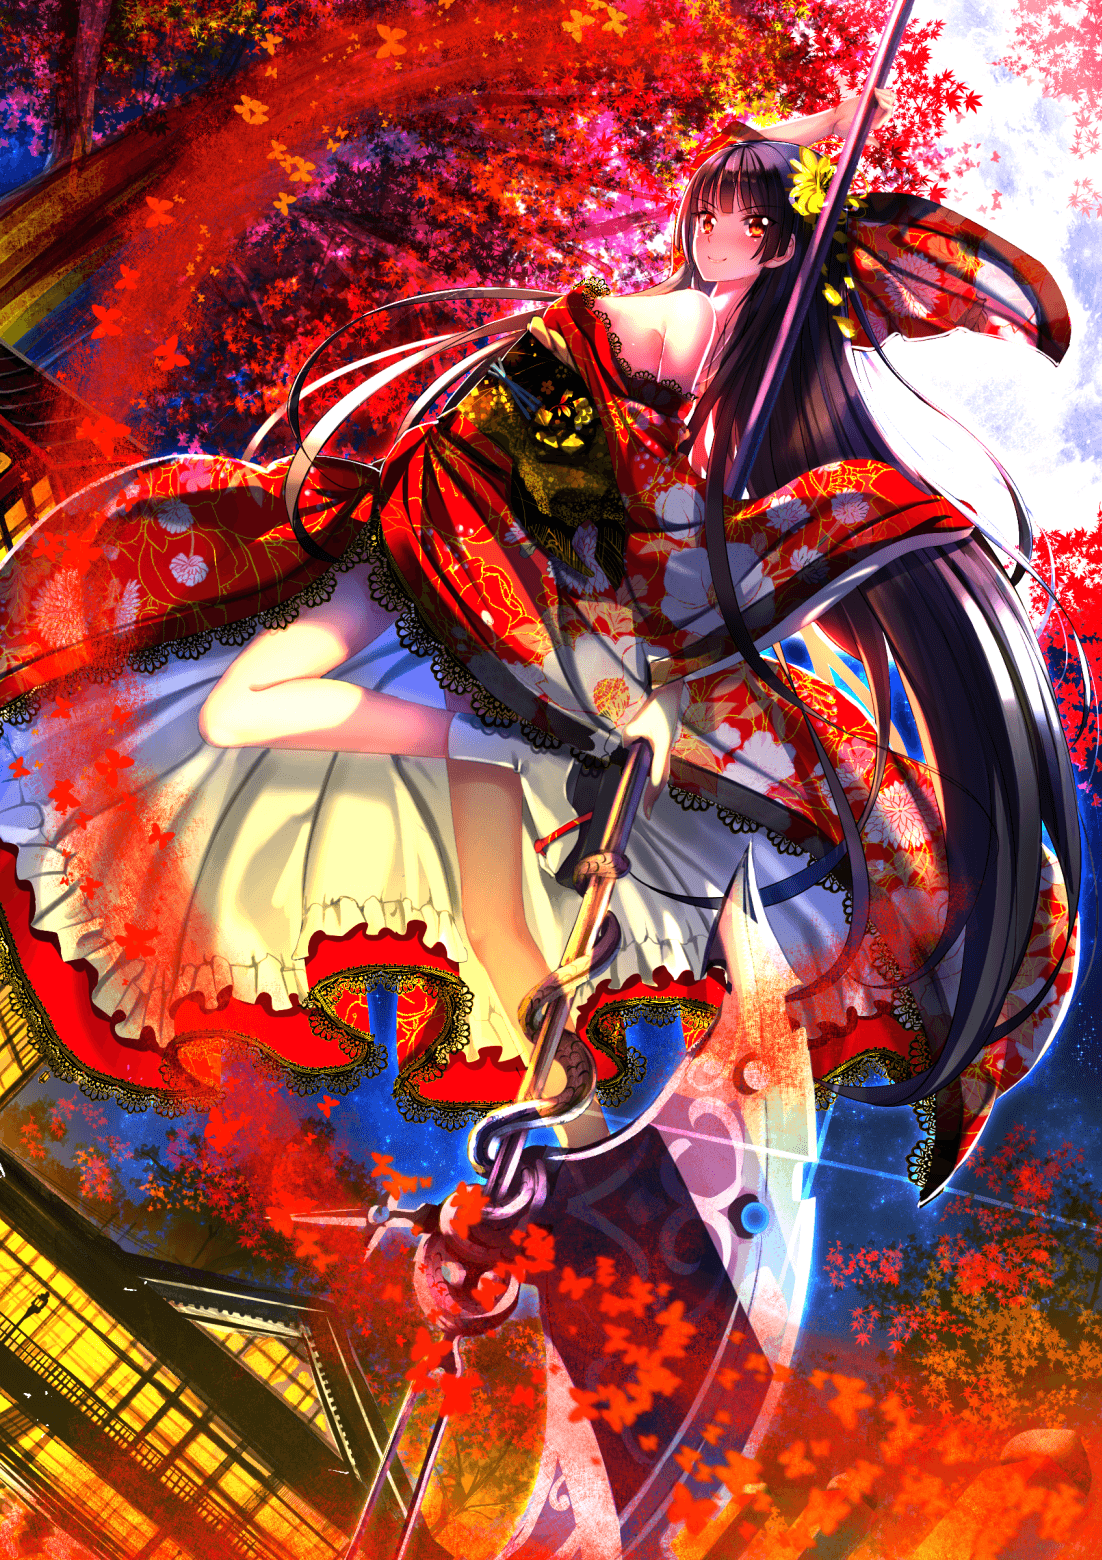 polearm, #Rory Mercury, #anime, #Swordsouls, #anime girls, #artwork ...